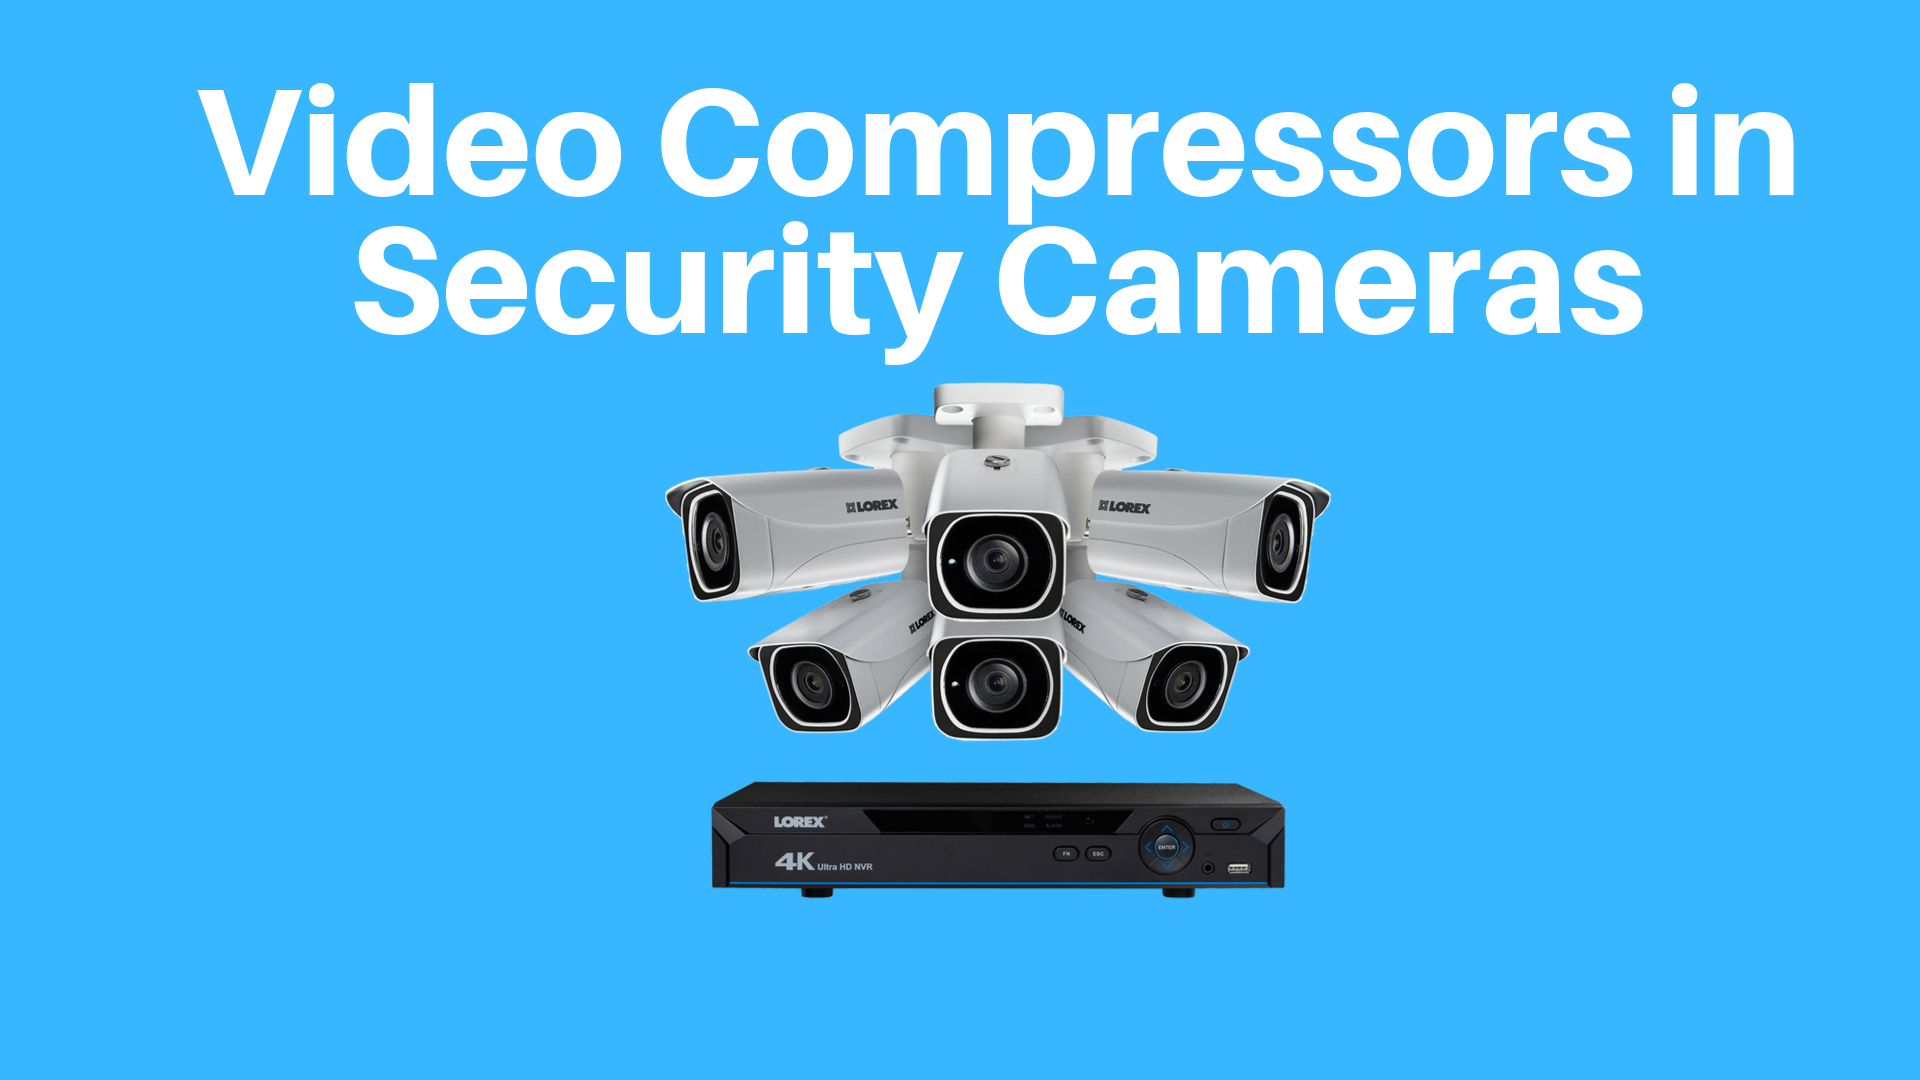 Best Video Compressors in Security Cameras